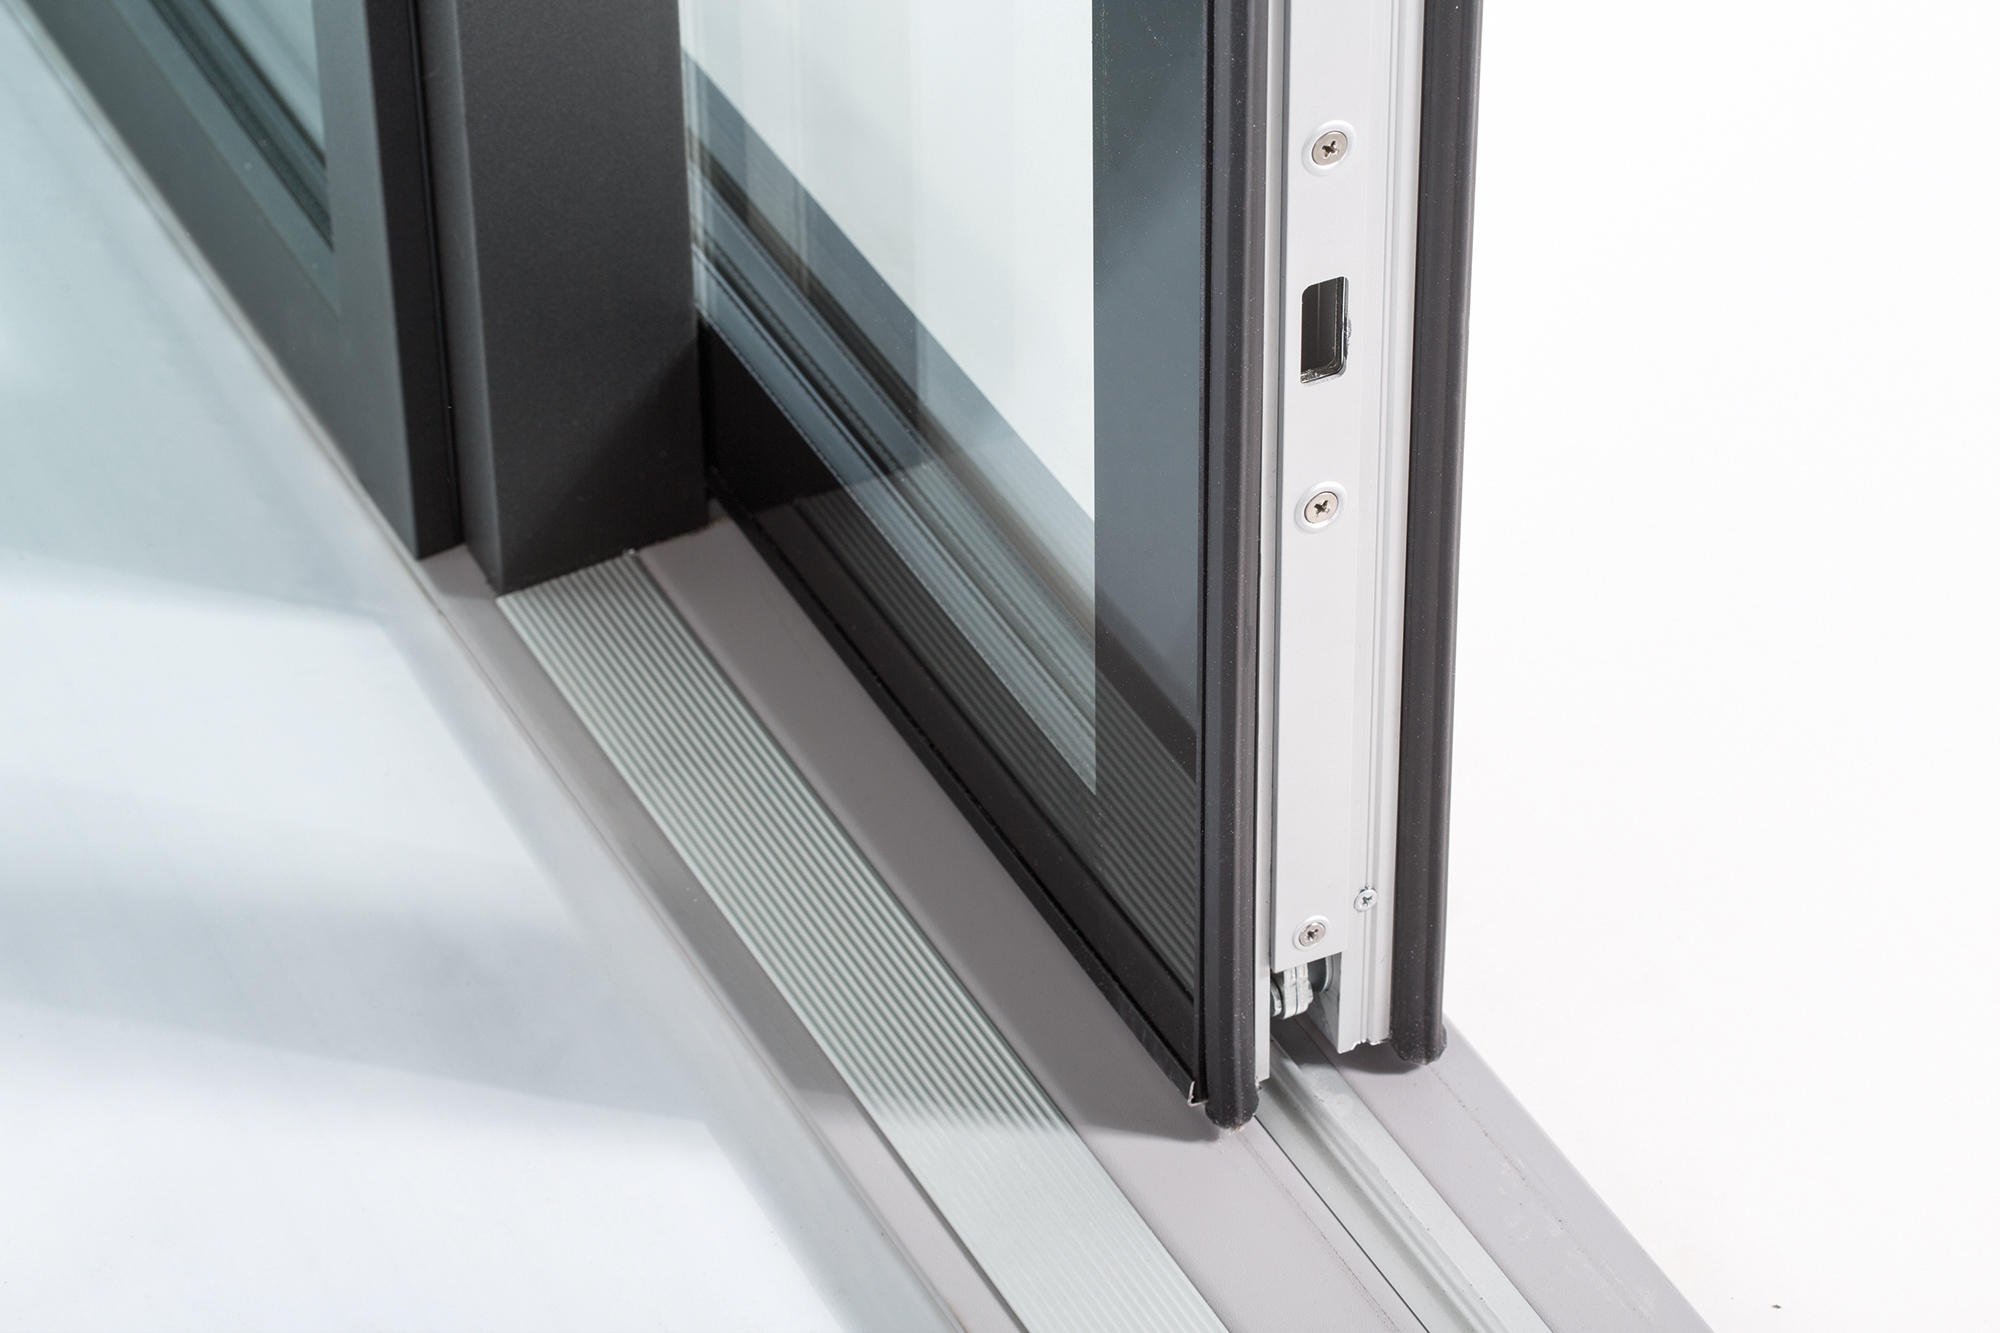 Lift and slide door cristal french doors from finstral for Porte lift and slide